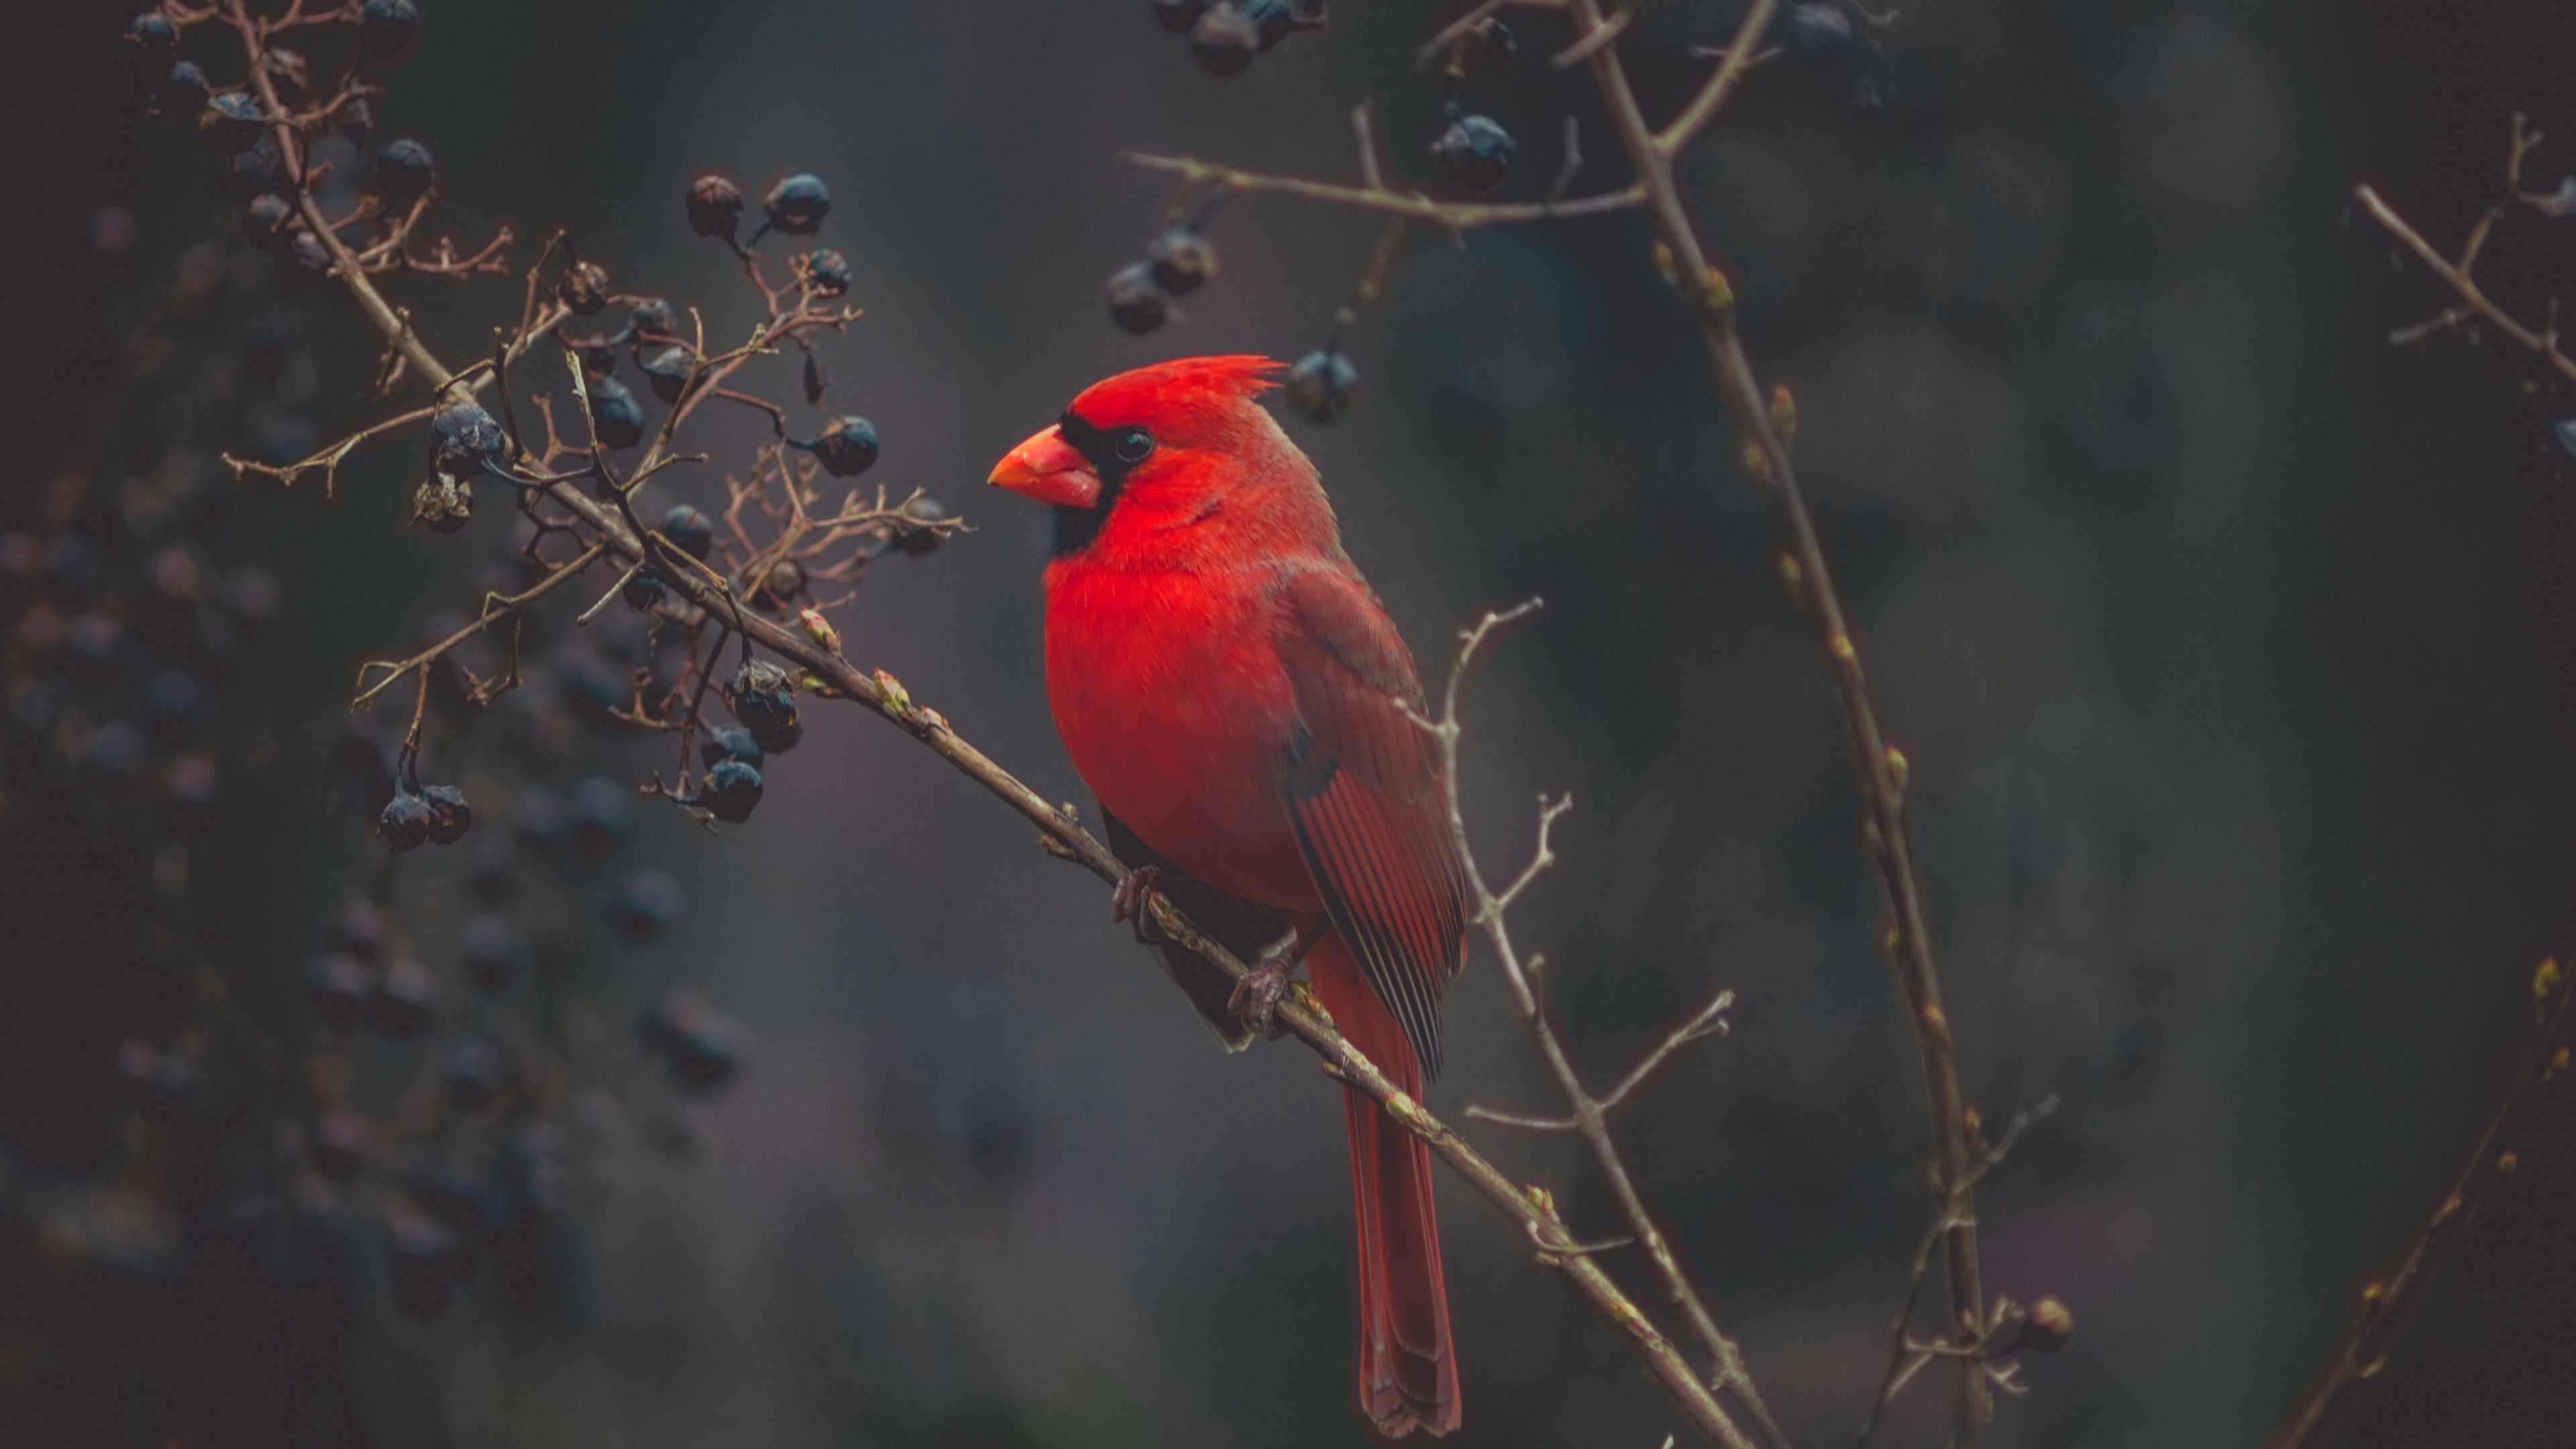 3840x2160 Tree, Northern Cardinal, Arizona Cardinals, Red, Wildlife Wallpaper in   Resolution